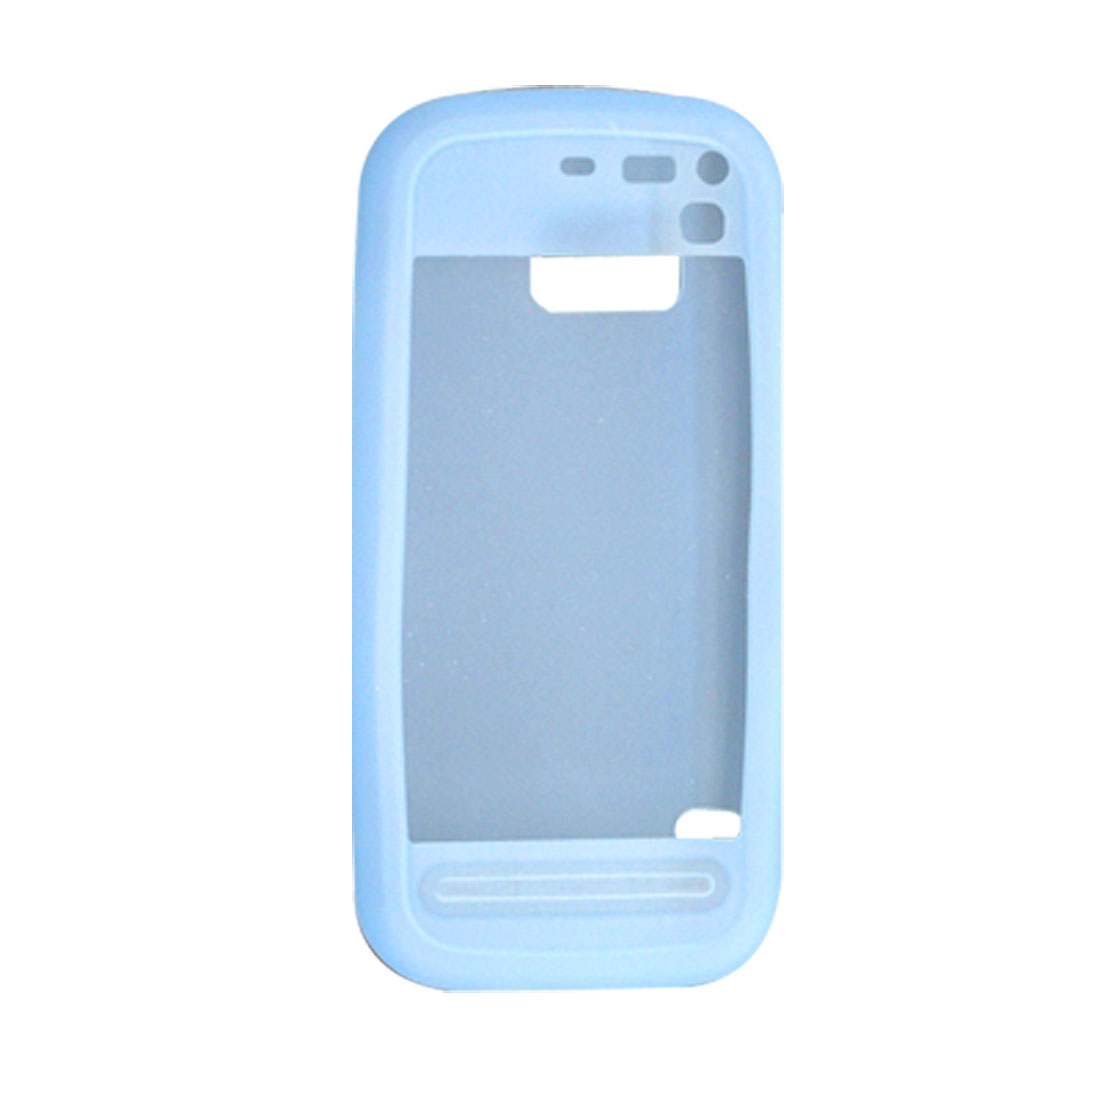 Silicone Skin Mobile Phone Case Protector for Nokia 5800 Skyblue